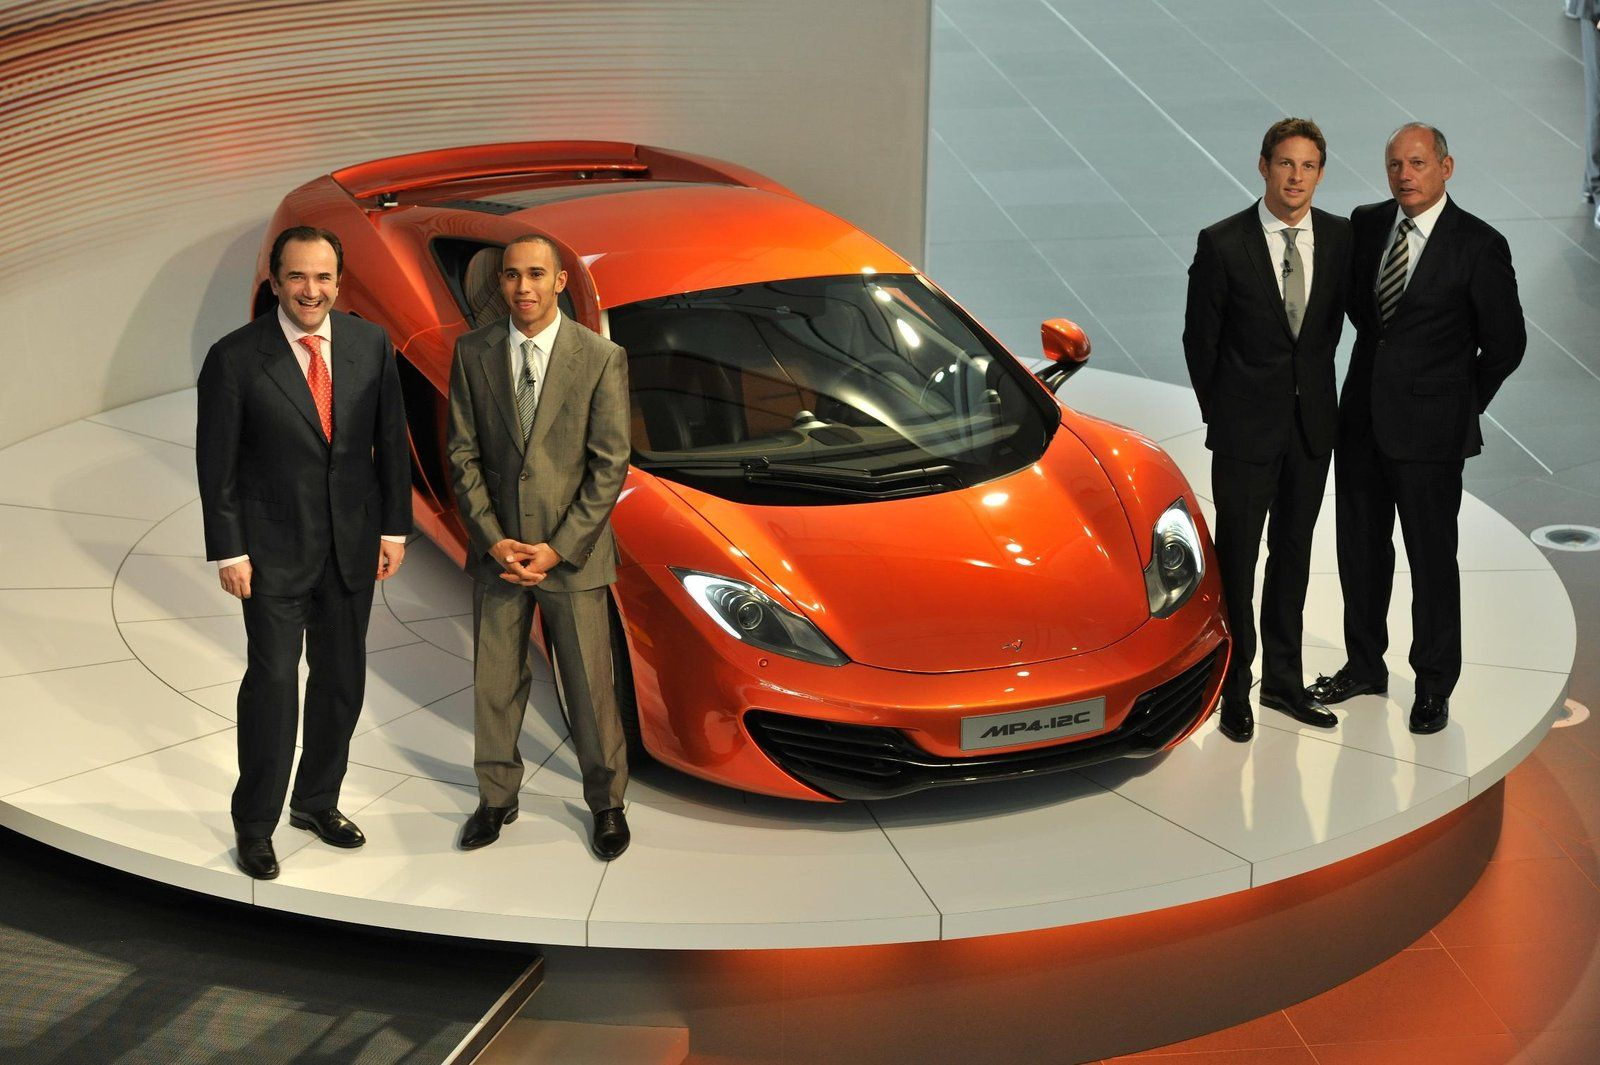 McLaren MP4-12C Press Launch Video